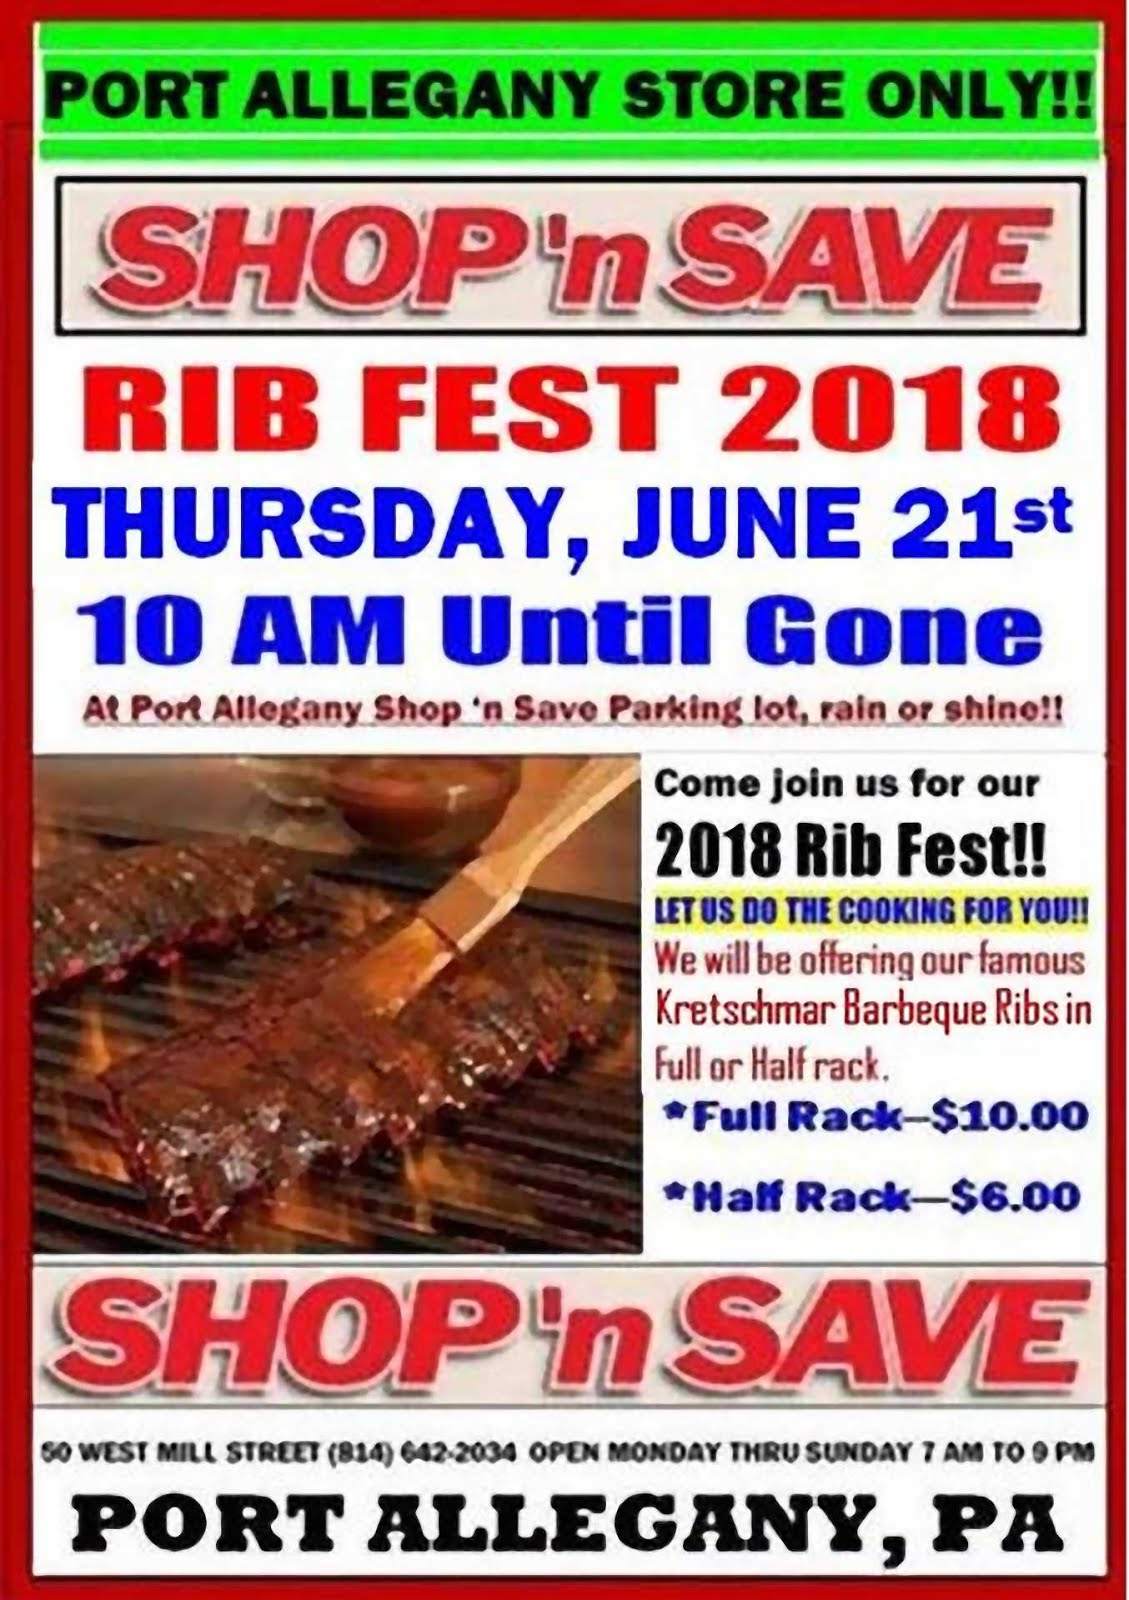 Port Allegany Shop n' Save